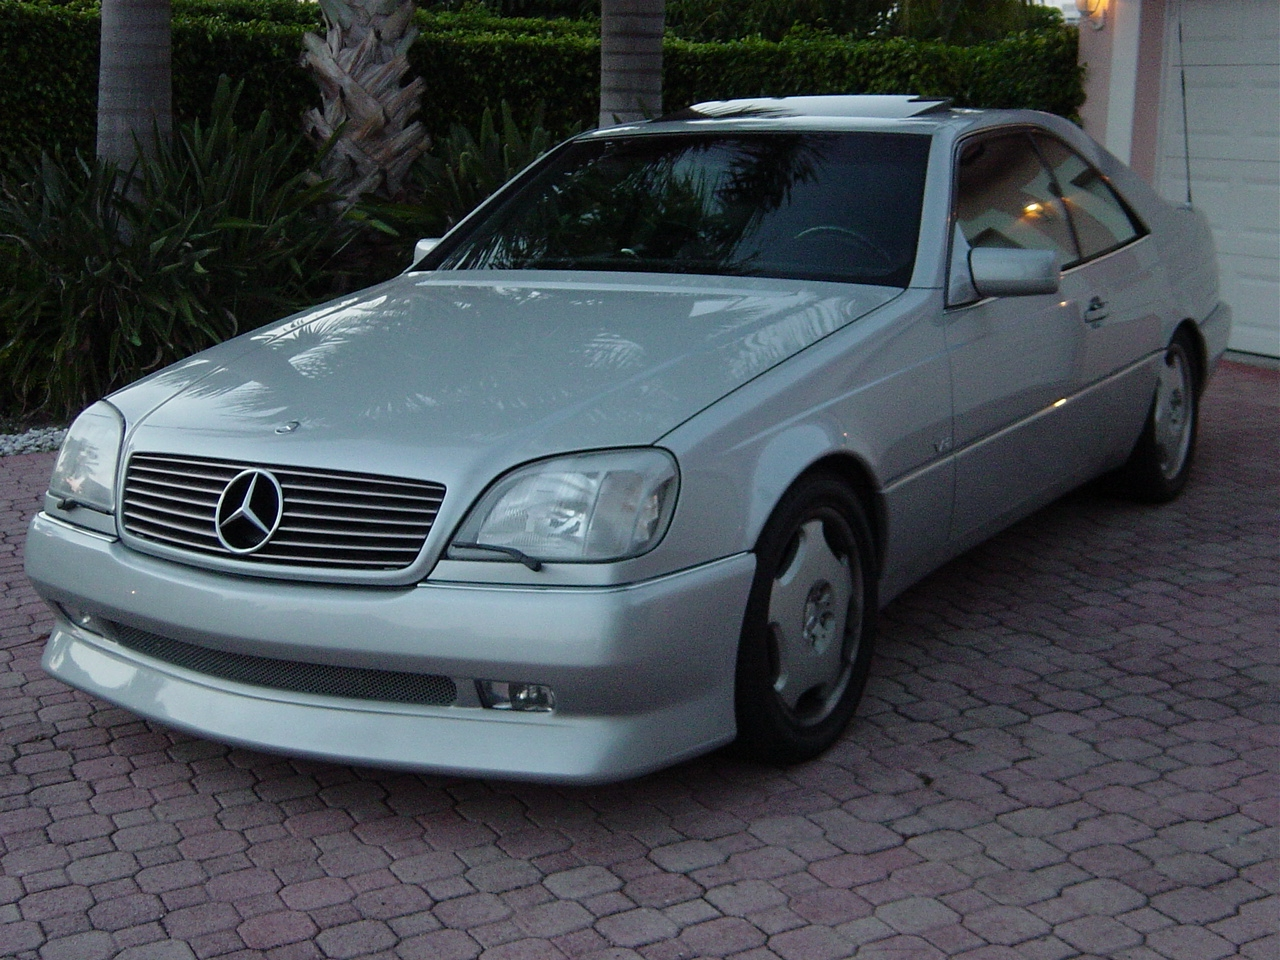 My New Cc 1996 Mercedes S600 V12 Coupe W140 Massive 2001 Cl600 Fuse Diagram Depreciation Is Friend